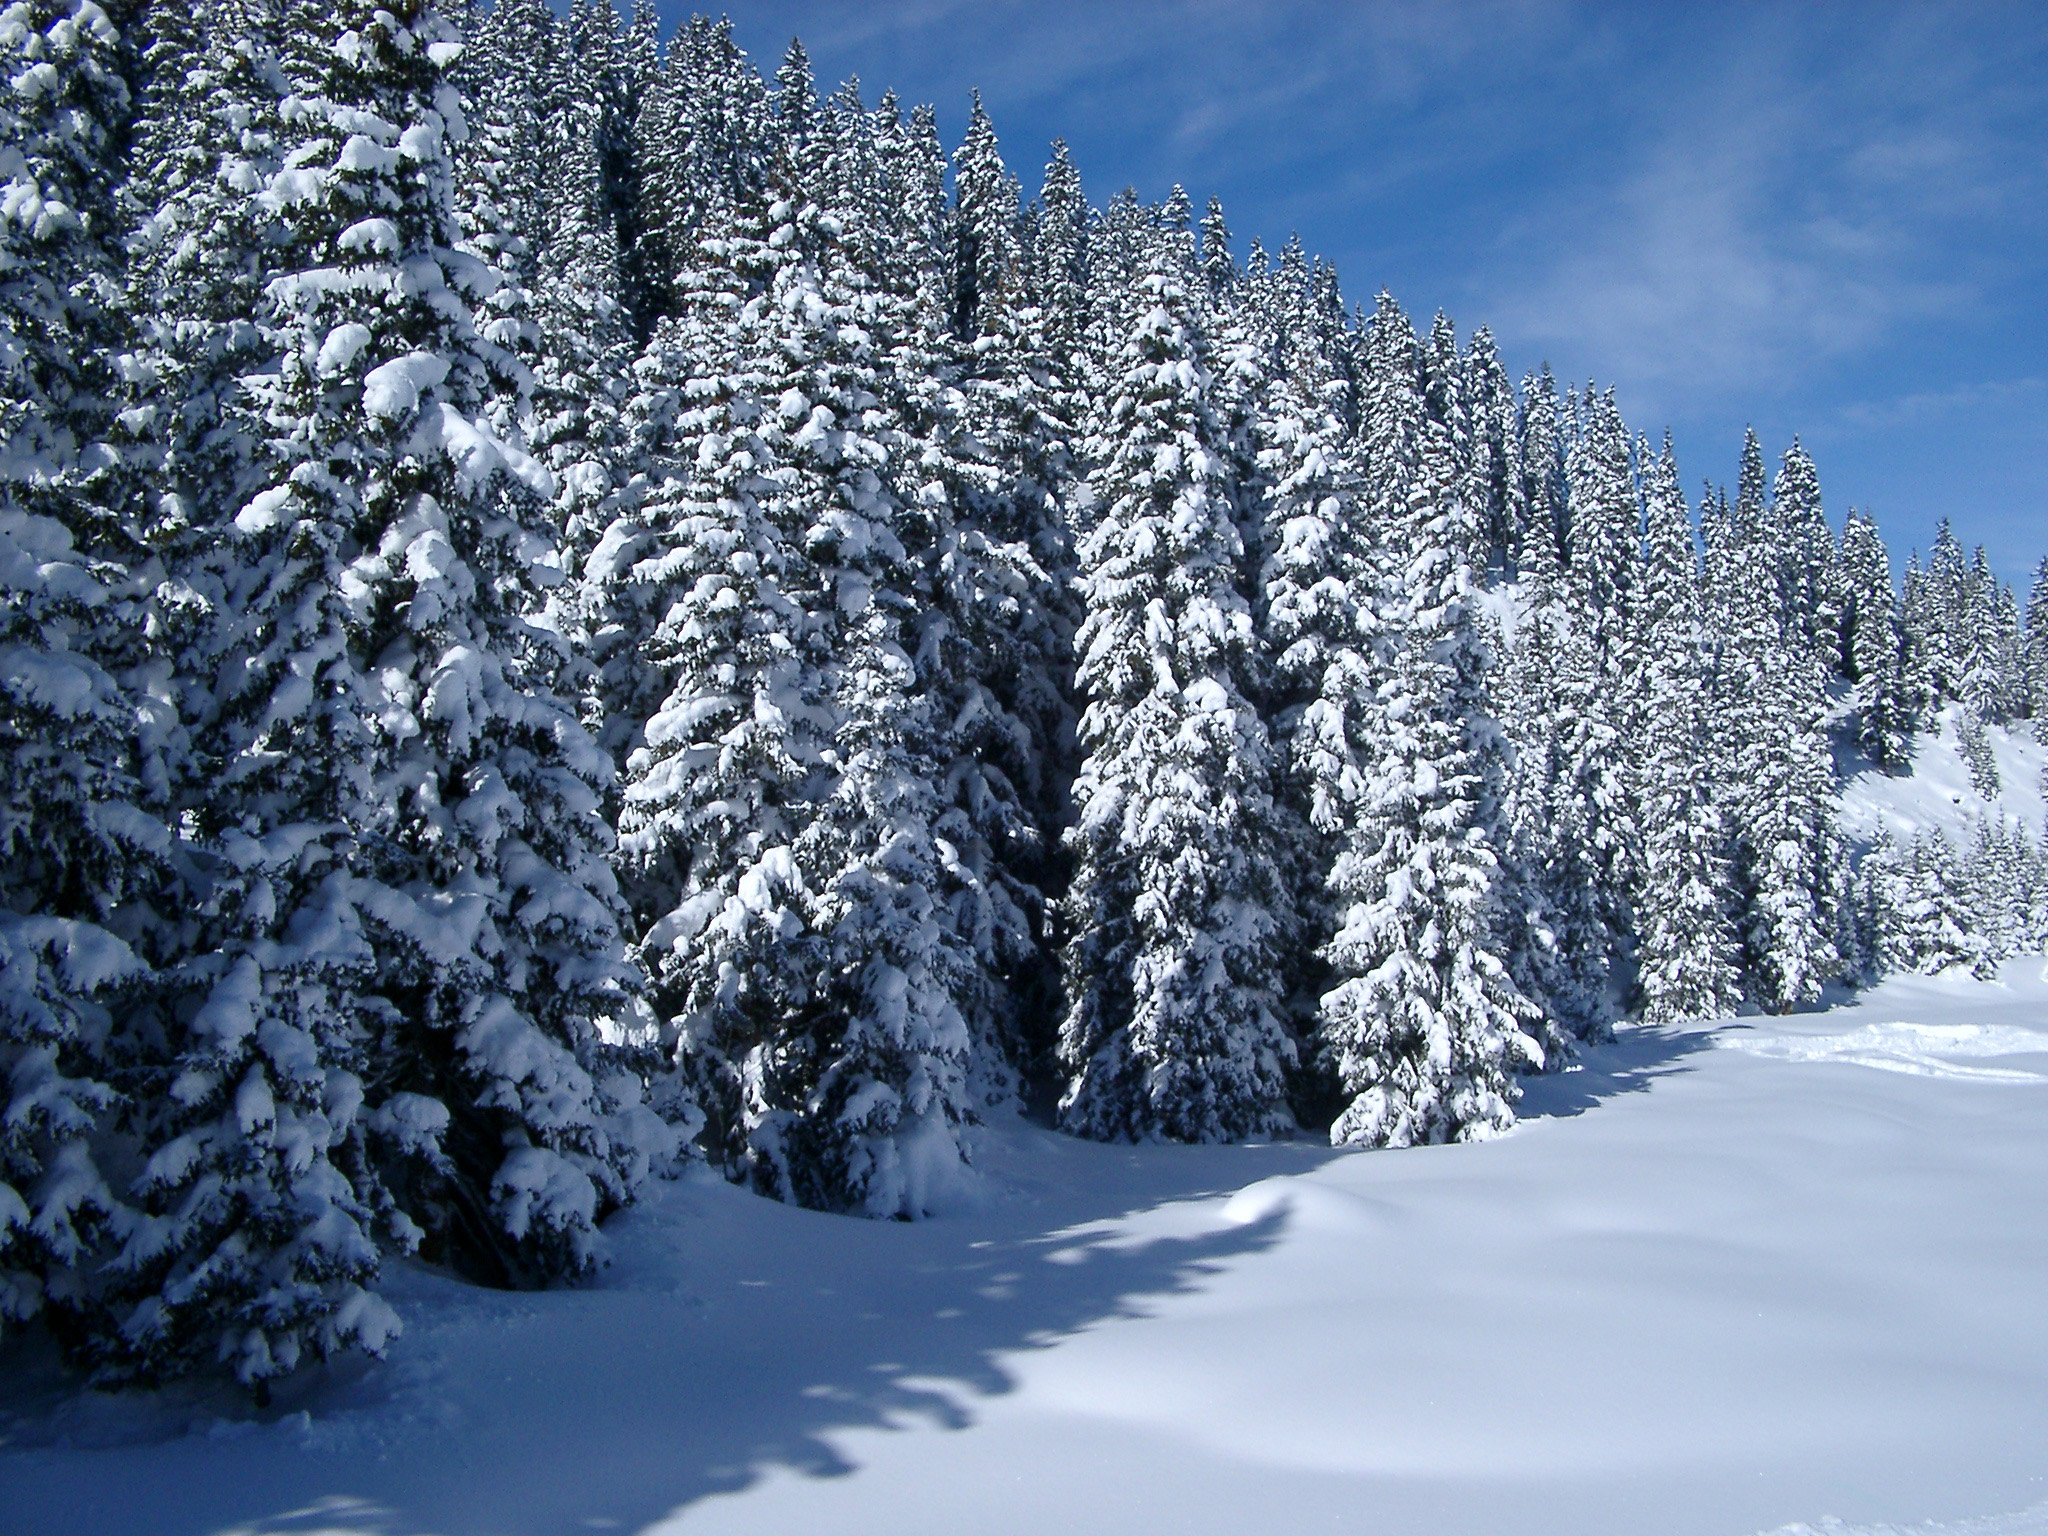 Free stock photo of snow covered forest of pine trees - Images of pine trees in snow ...